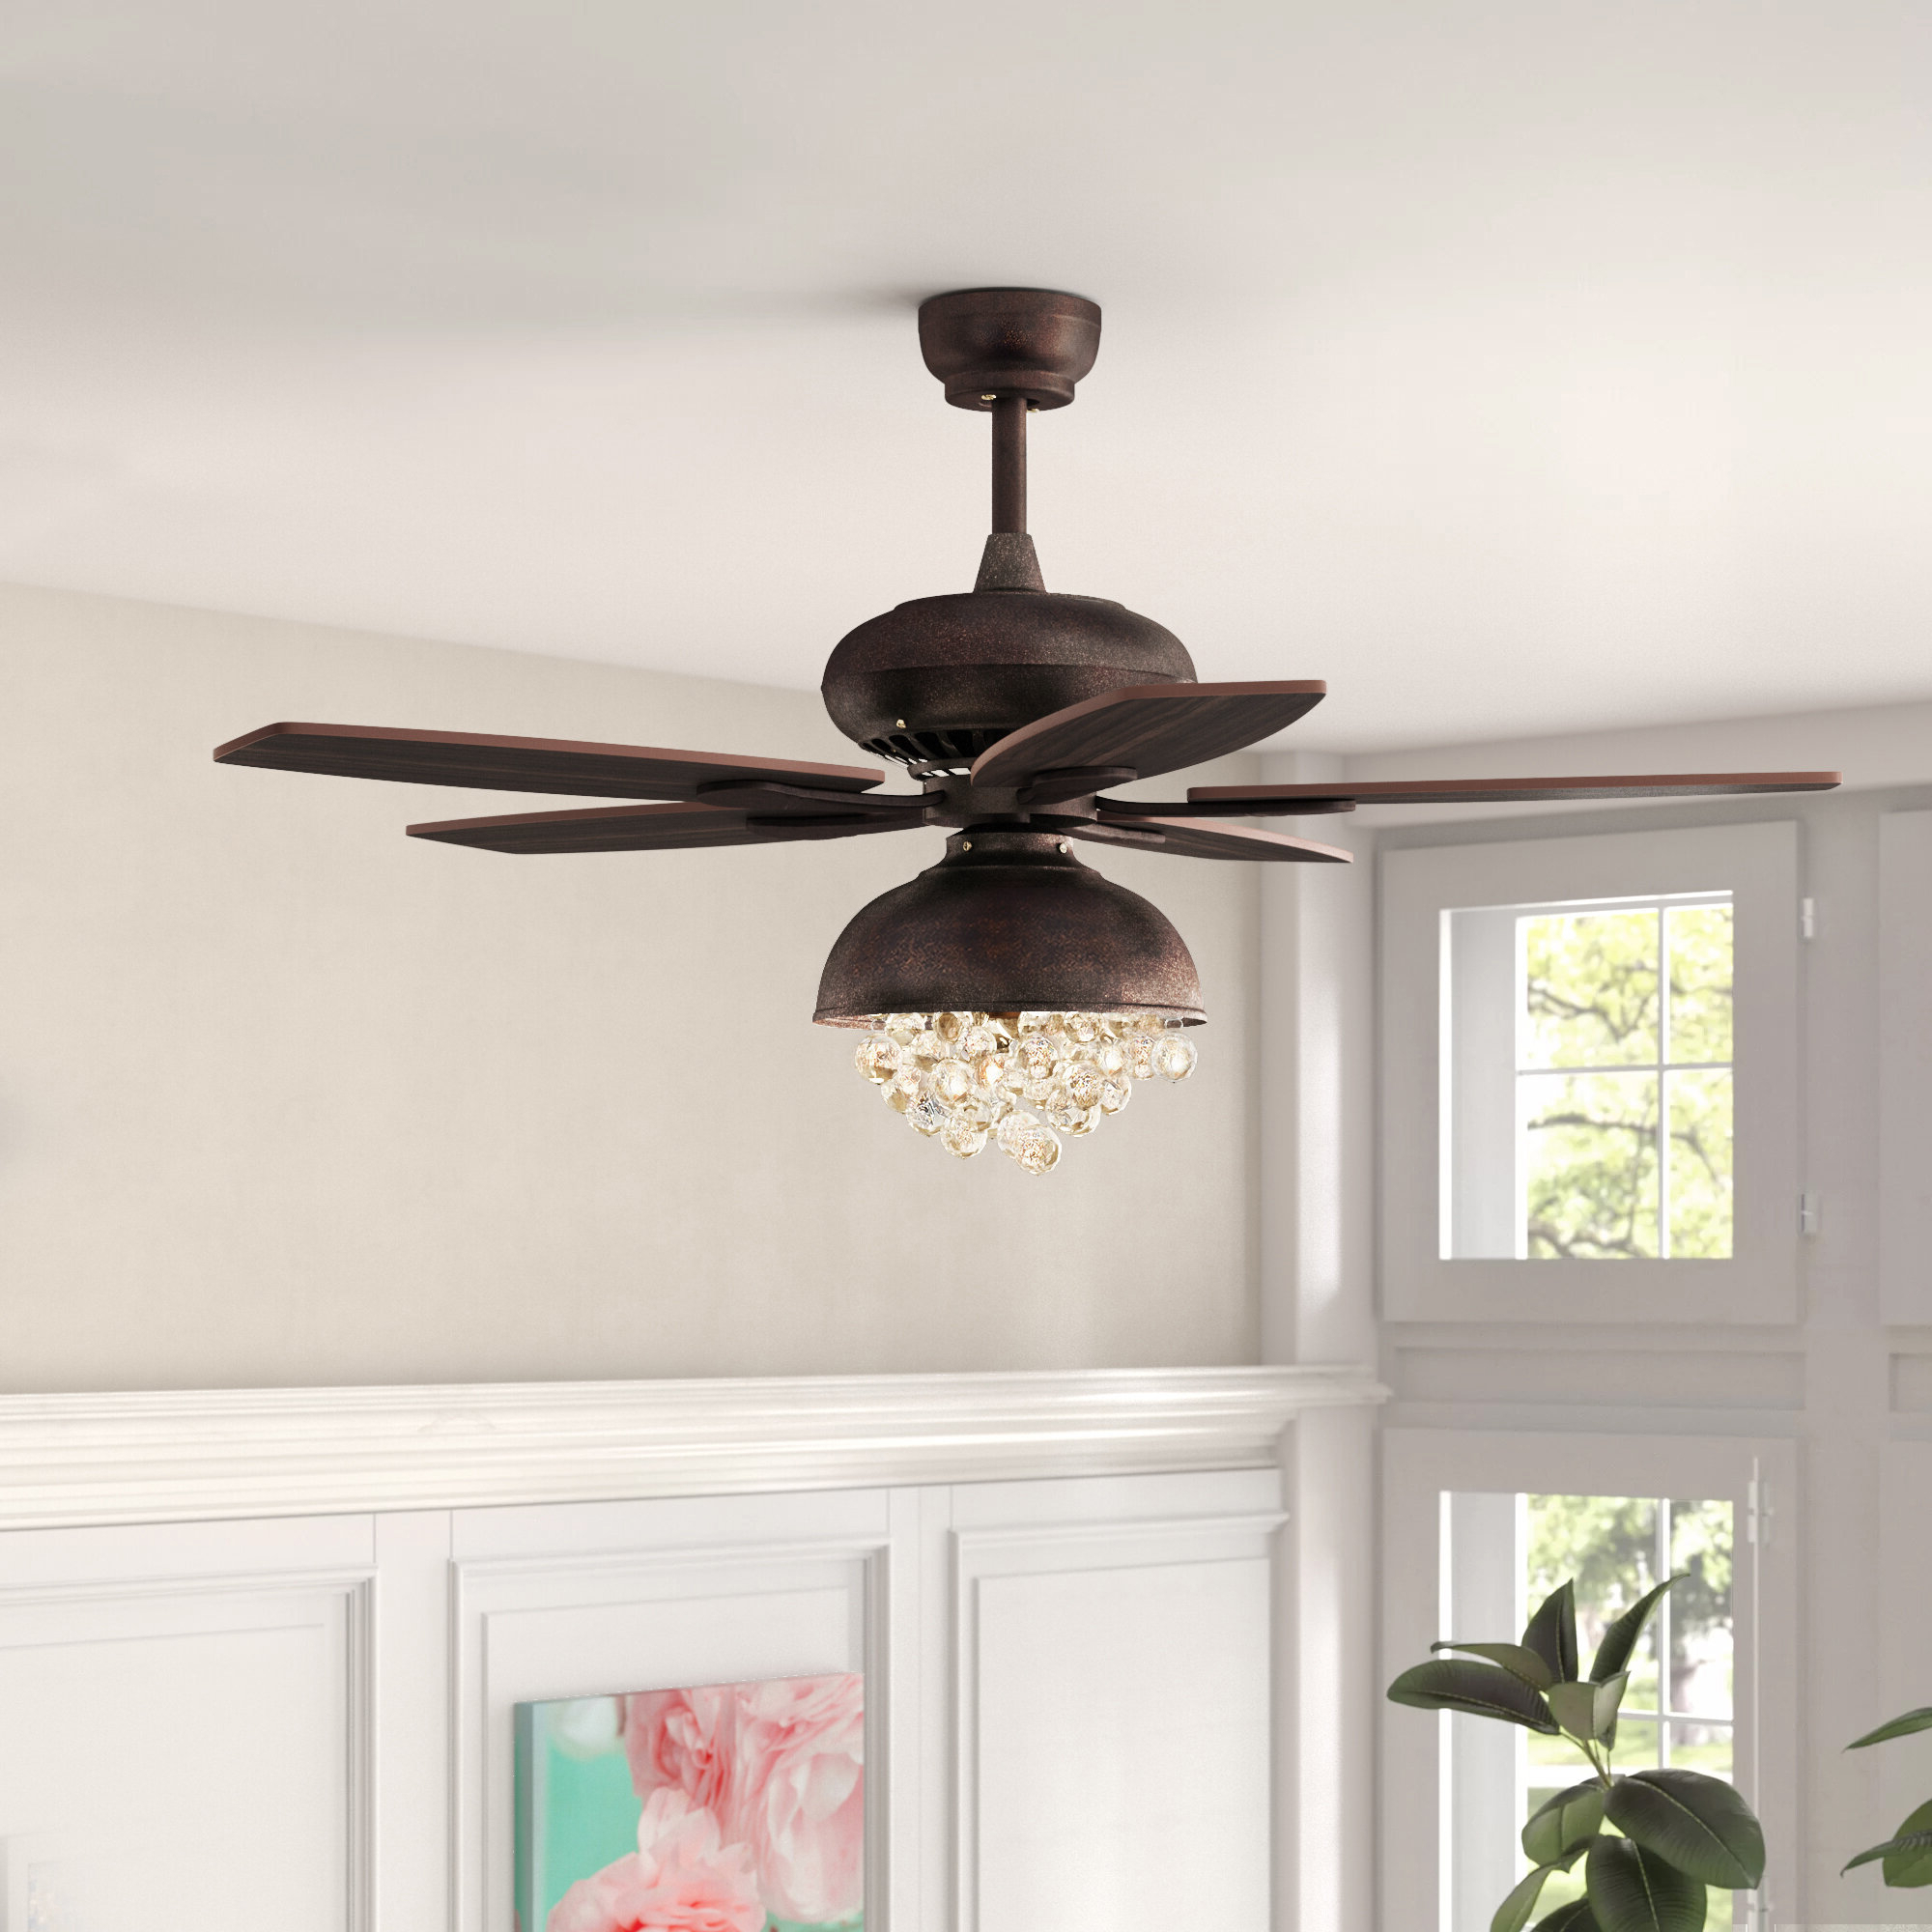 "52"" Davidson 5 Blade Ceiling Fan With Remote, Light Kit Included Throughout 2020 Mccarthy 5 Blade Ceiling Fans (View 4 of 20)"